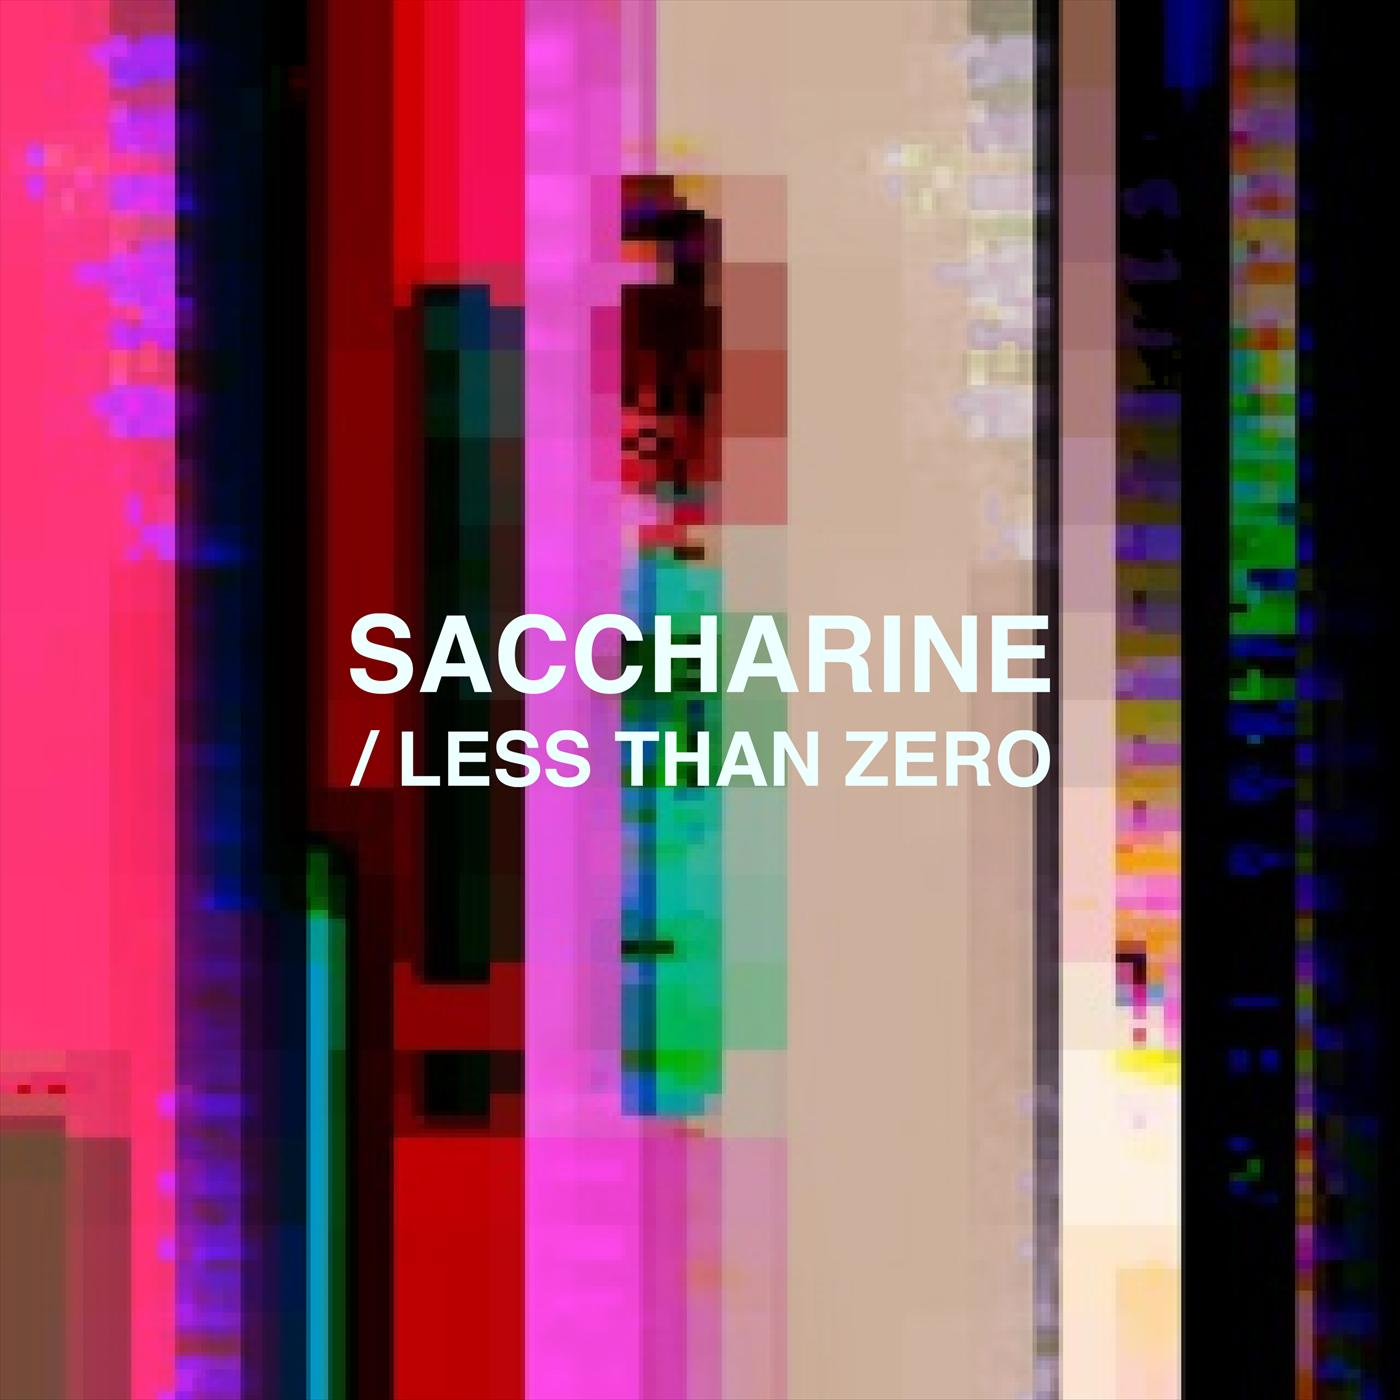 Saccharine / Less Than Zero